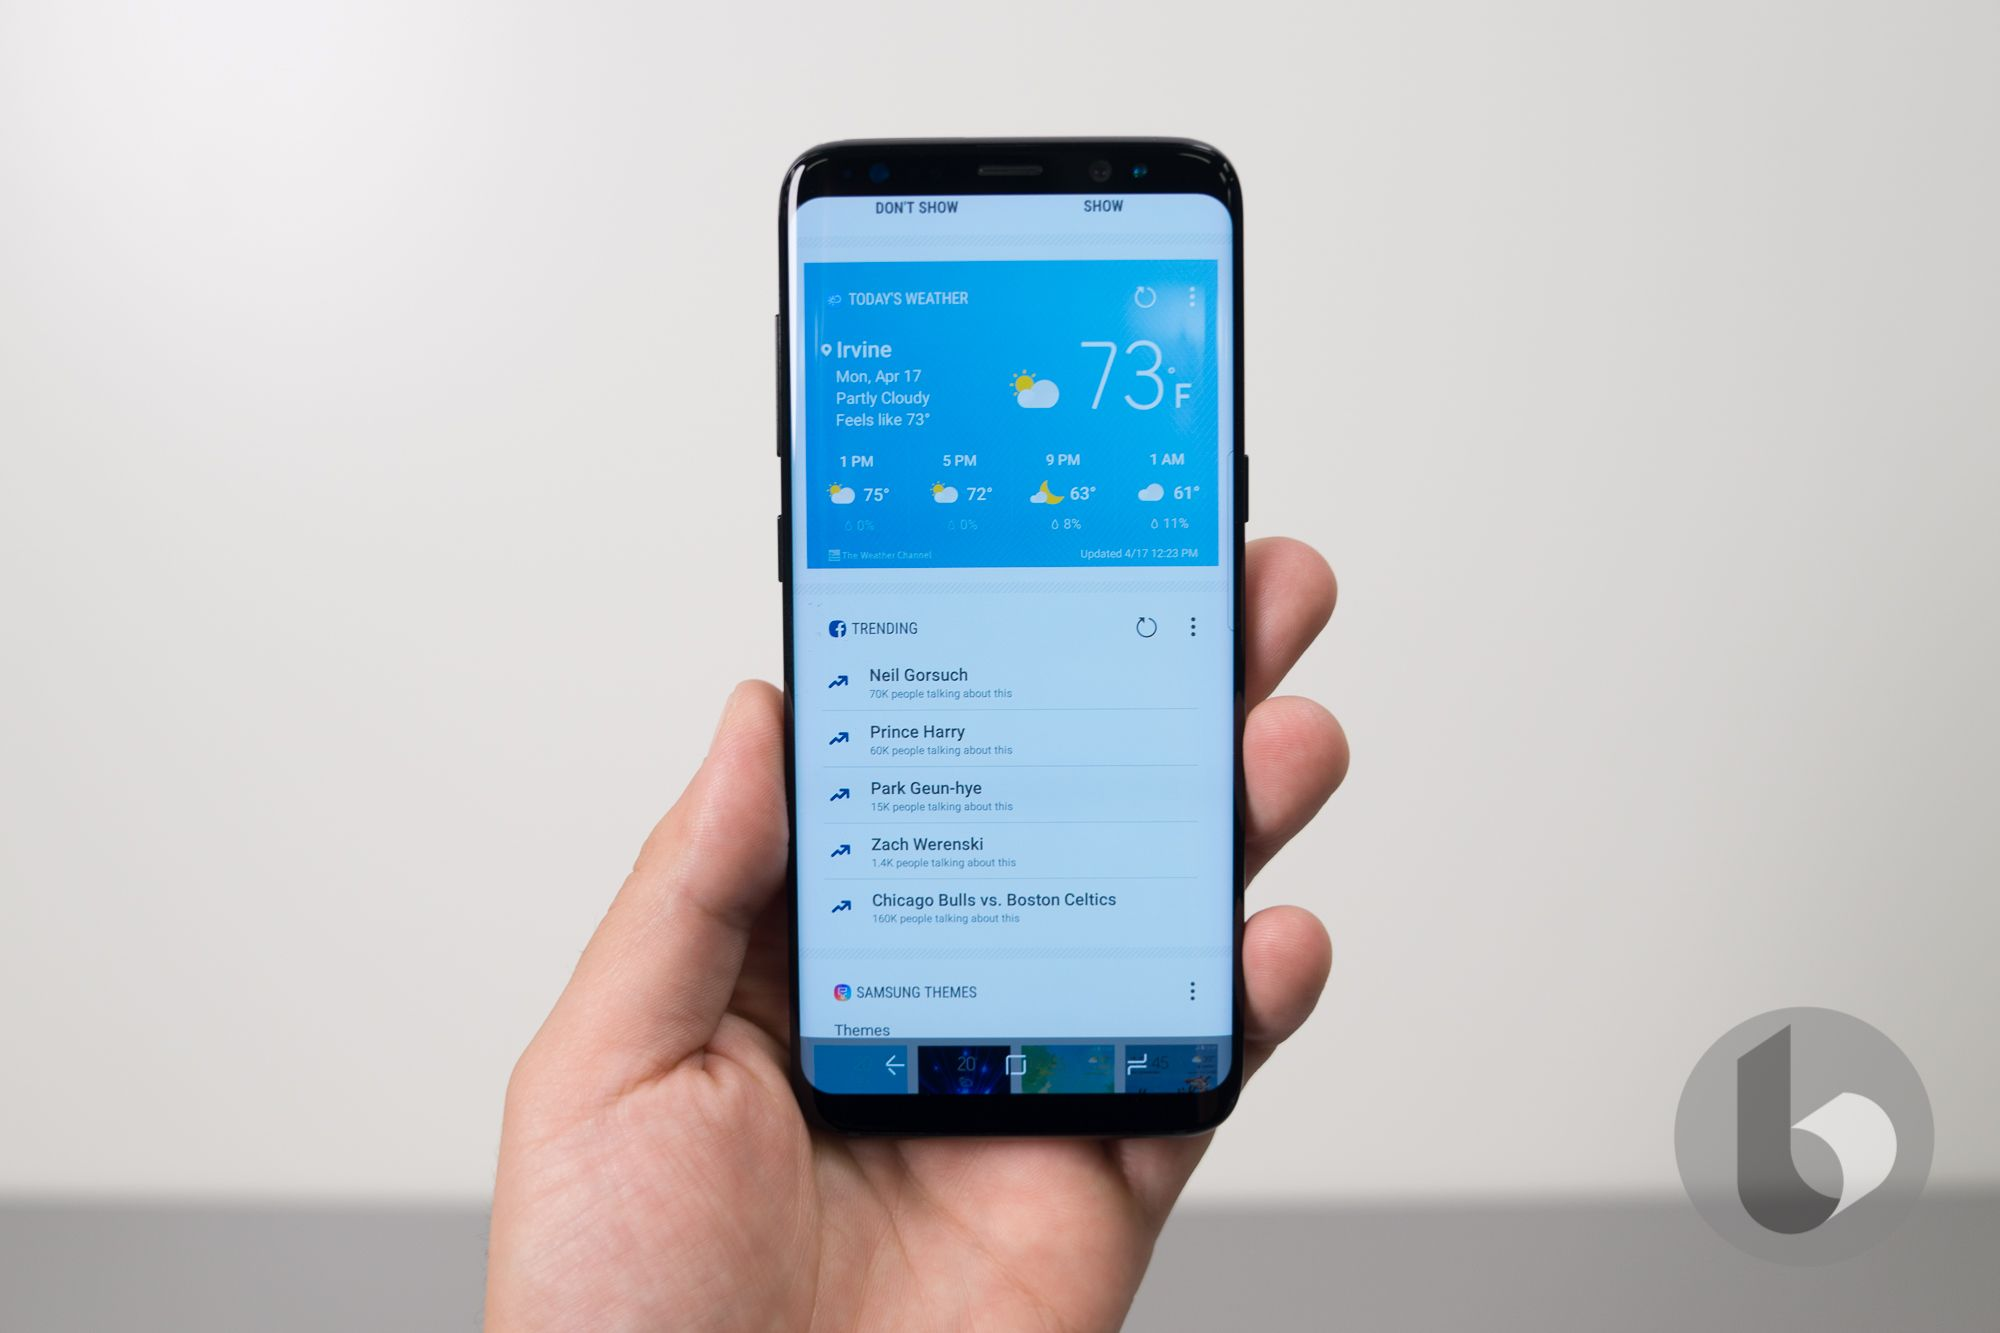 New app lets you remap Galaxy S8's Bixby button to Google